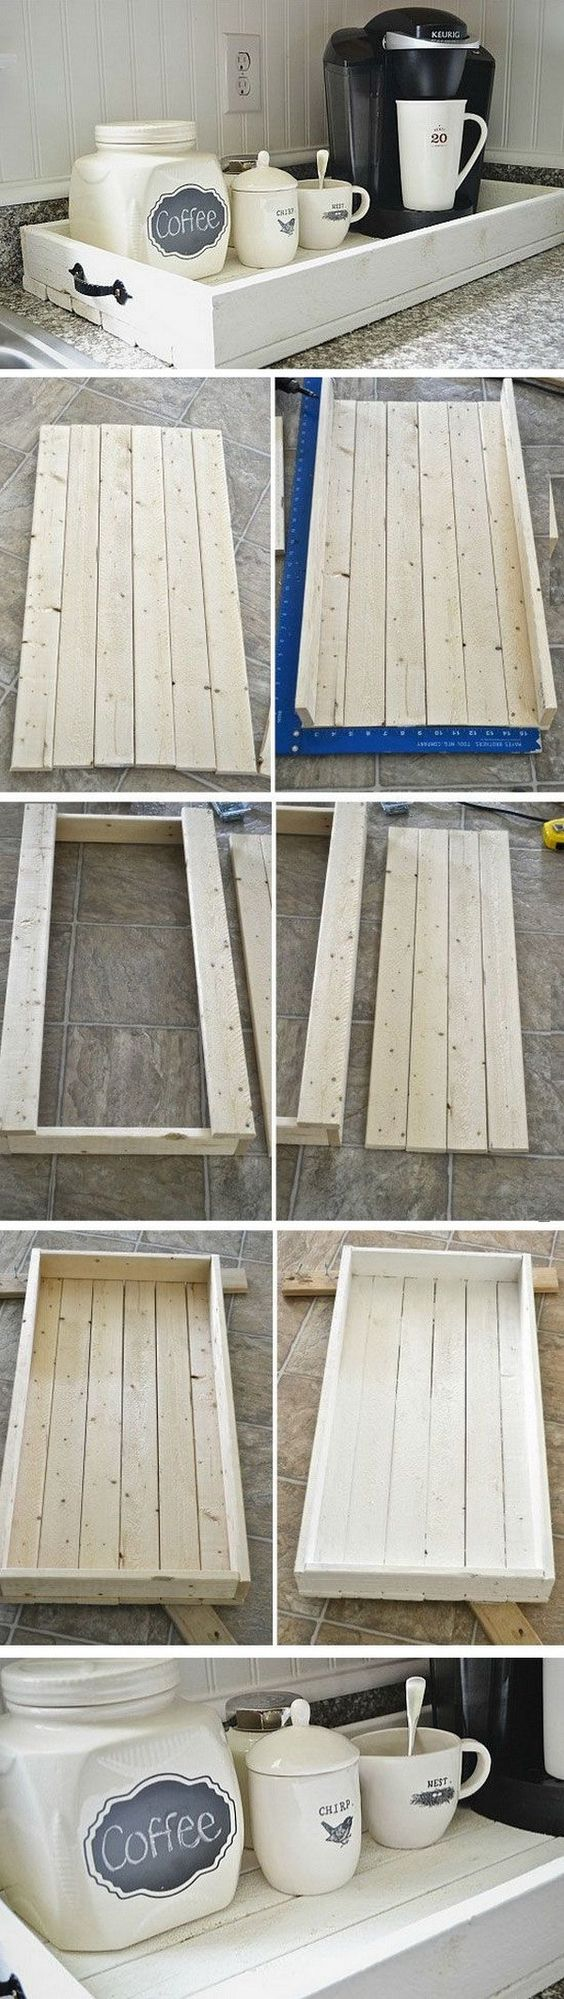 DIY Rustic Wood Tray. Love this tray for our coffee station in my kitchen! You can make it with some pallet wood boards and a bit of woodworking skills.: